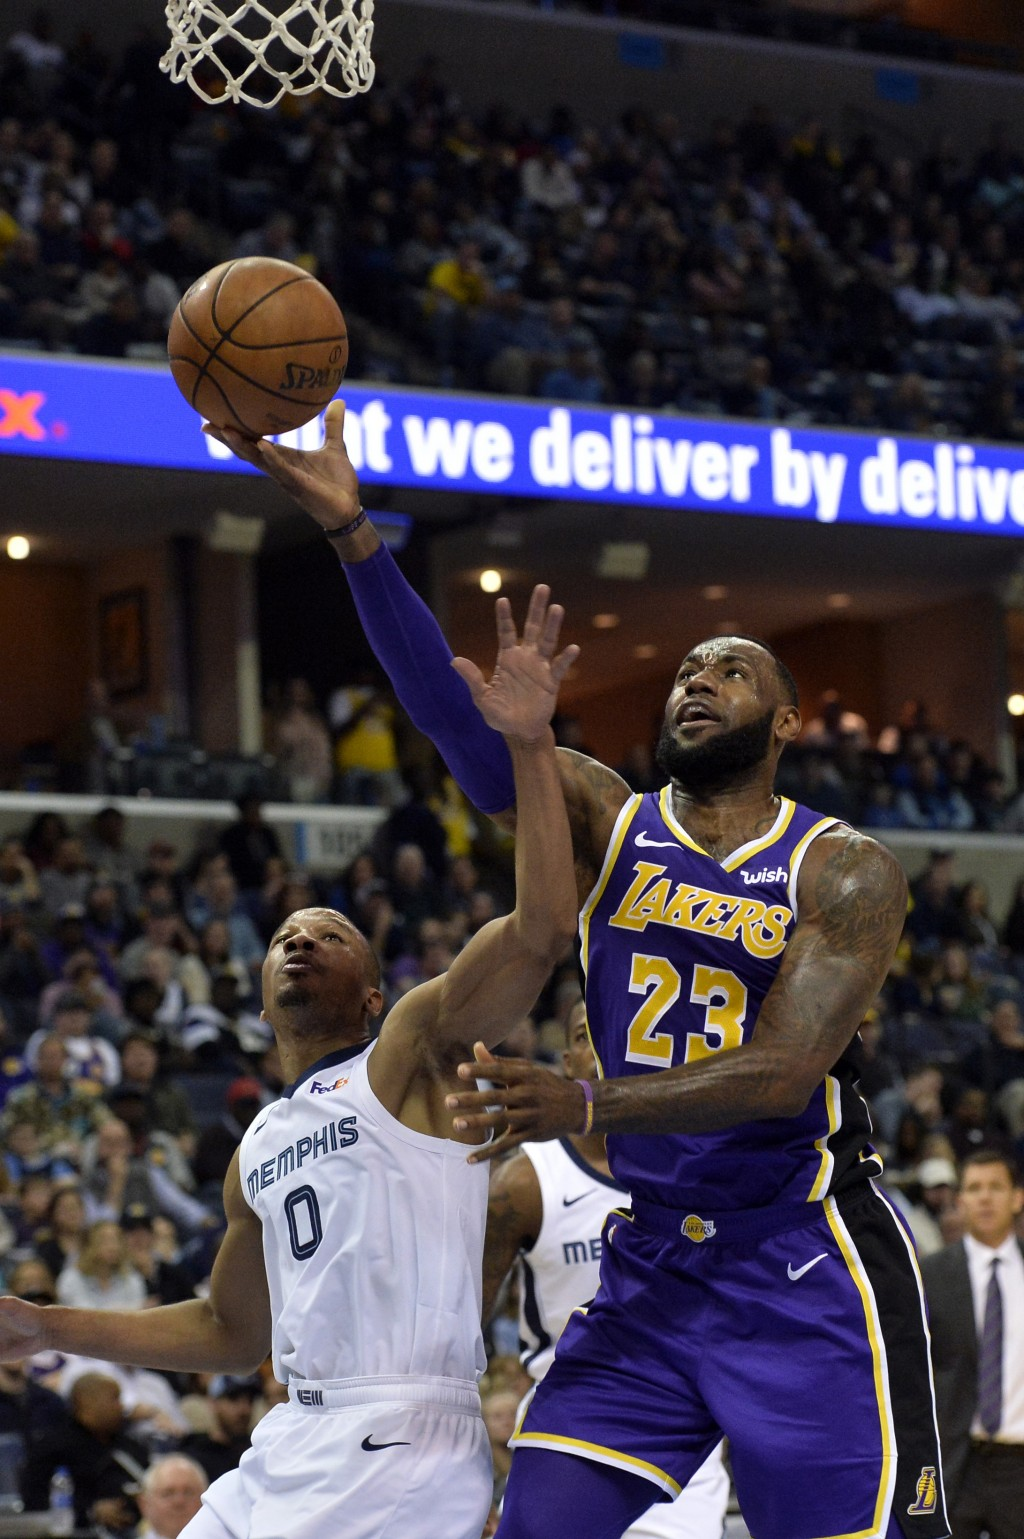 Los Angeles Lakers forward LeBron James (23) shoots against Memphis Grizzlies guard Avery Bradley (0) in the first half of an NBA basketball game Mond